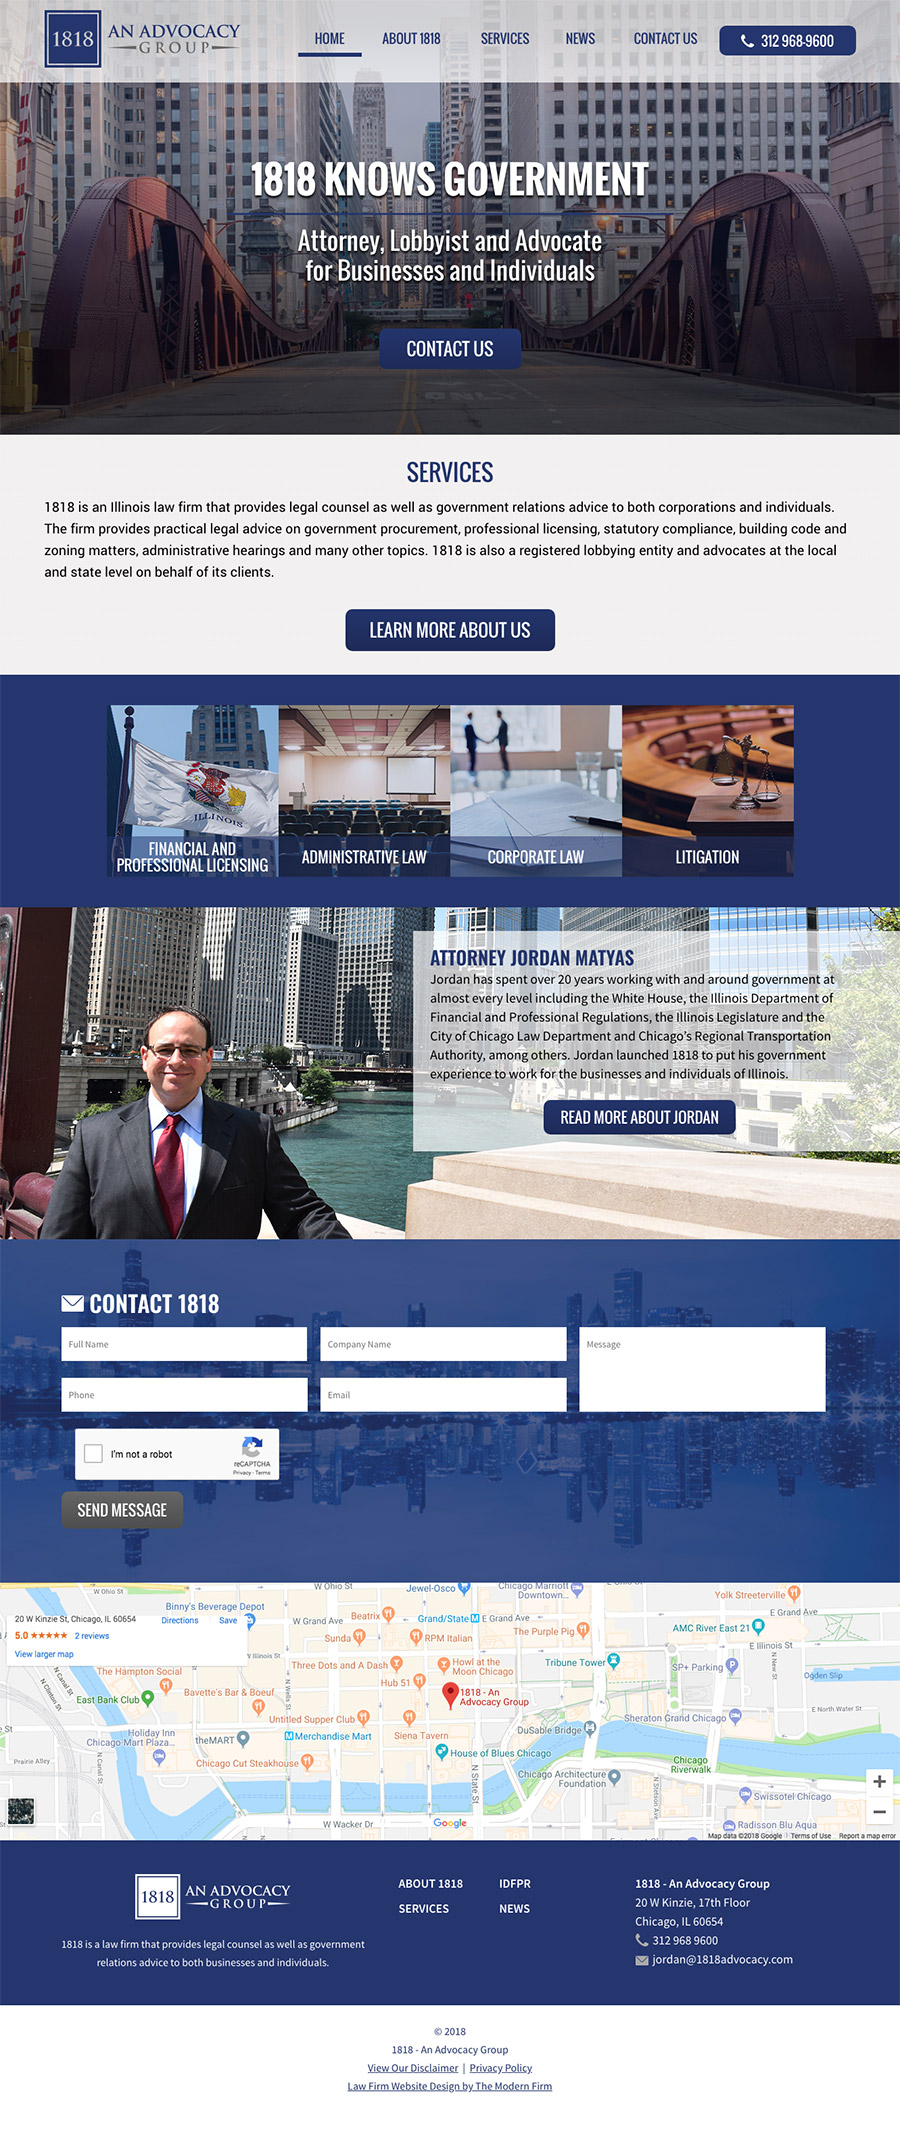 Law Firm Website Design for 1818 - An Advocacy Group